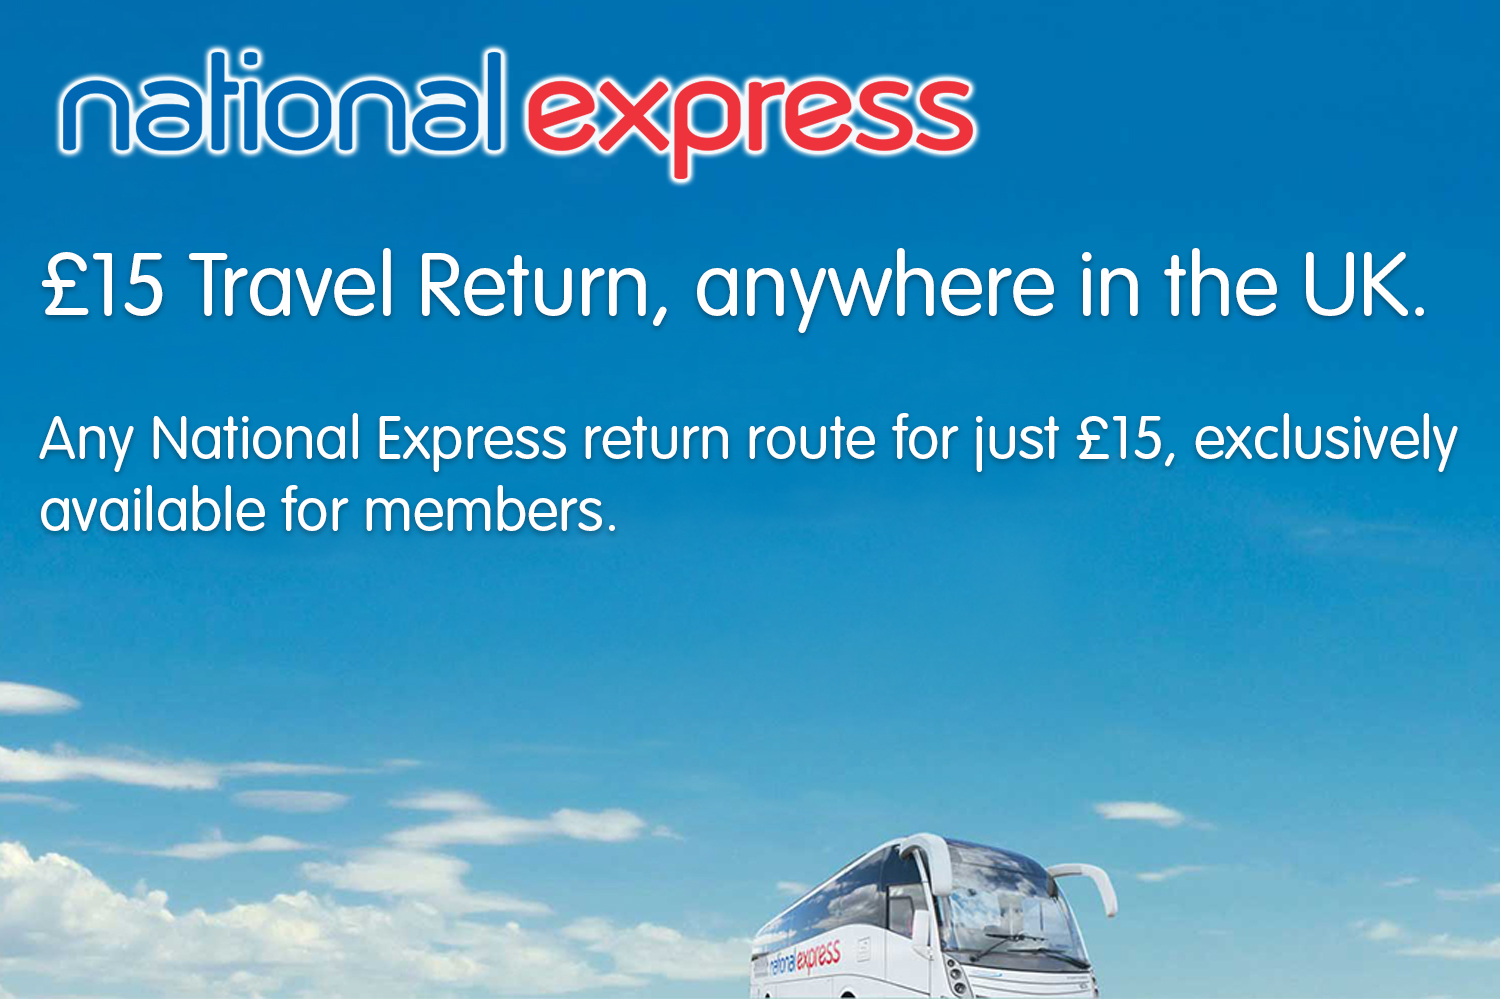 £15 Anywhere to anywhere return - National Express